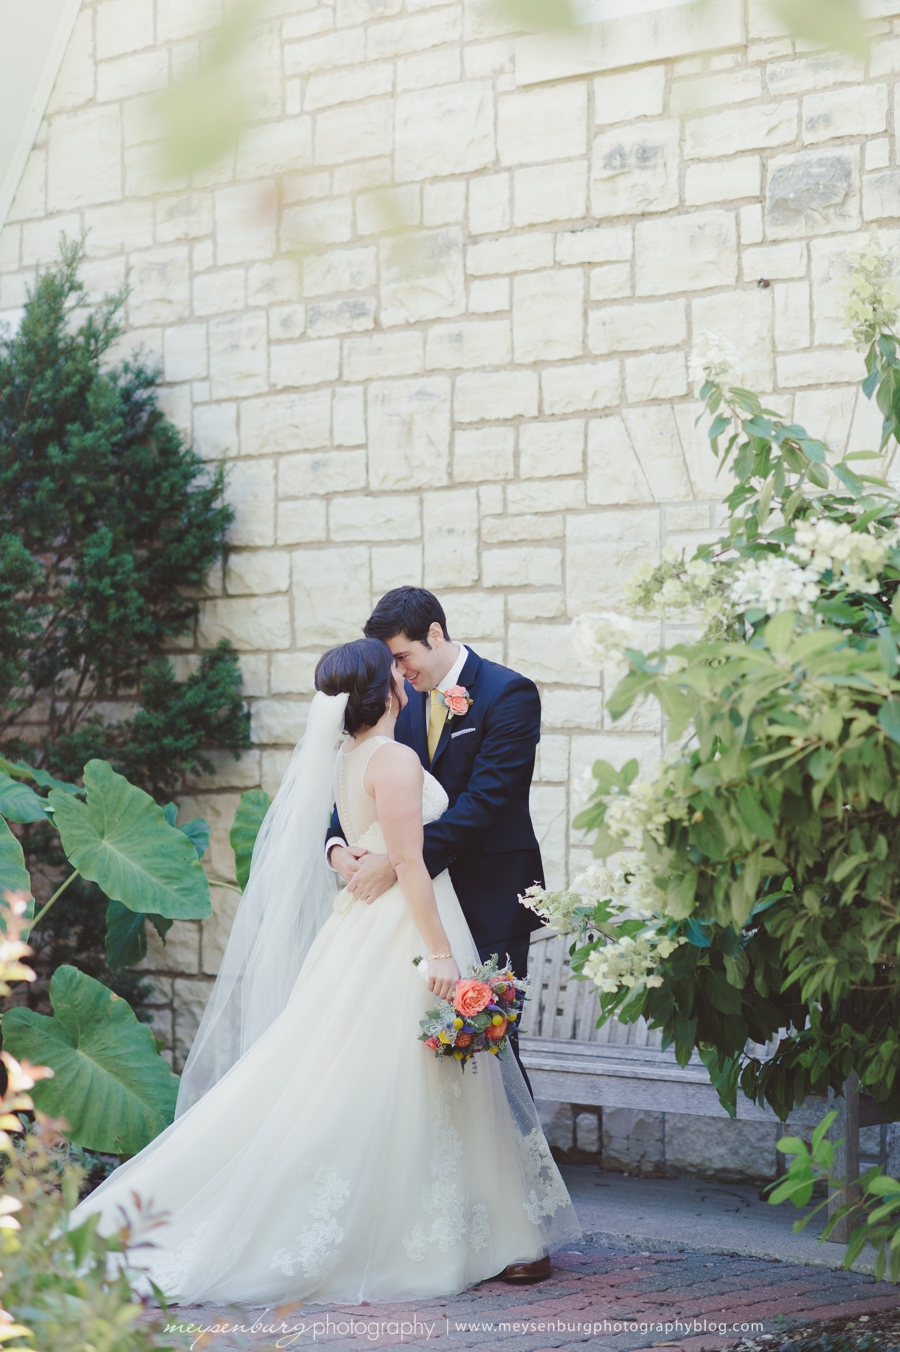 Manhattan KS Weddings, Kansas Outdoor Weddings, Garden Weddings